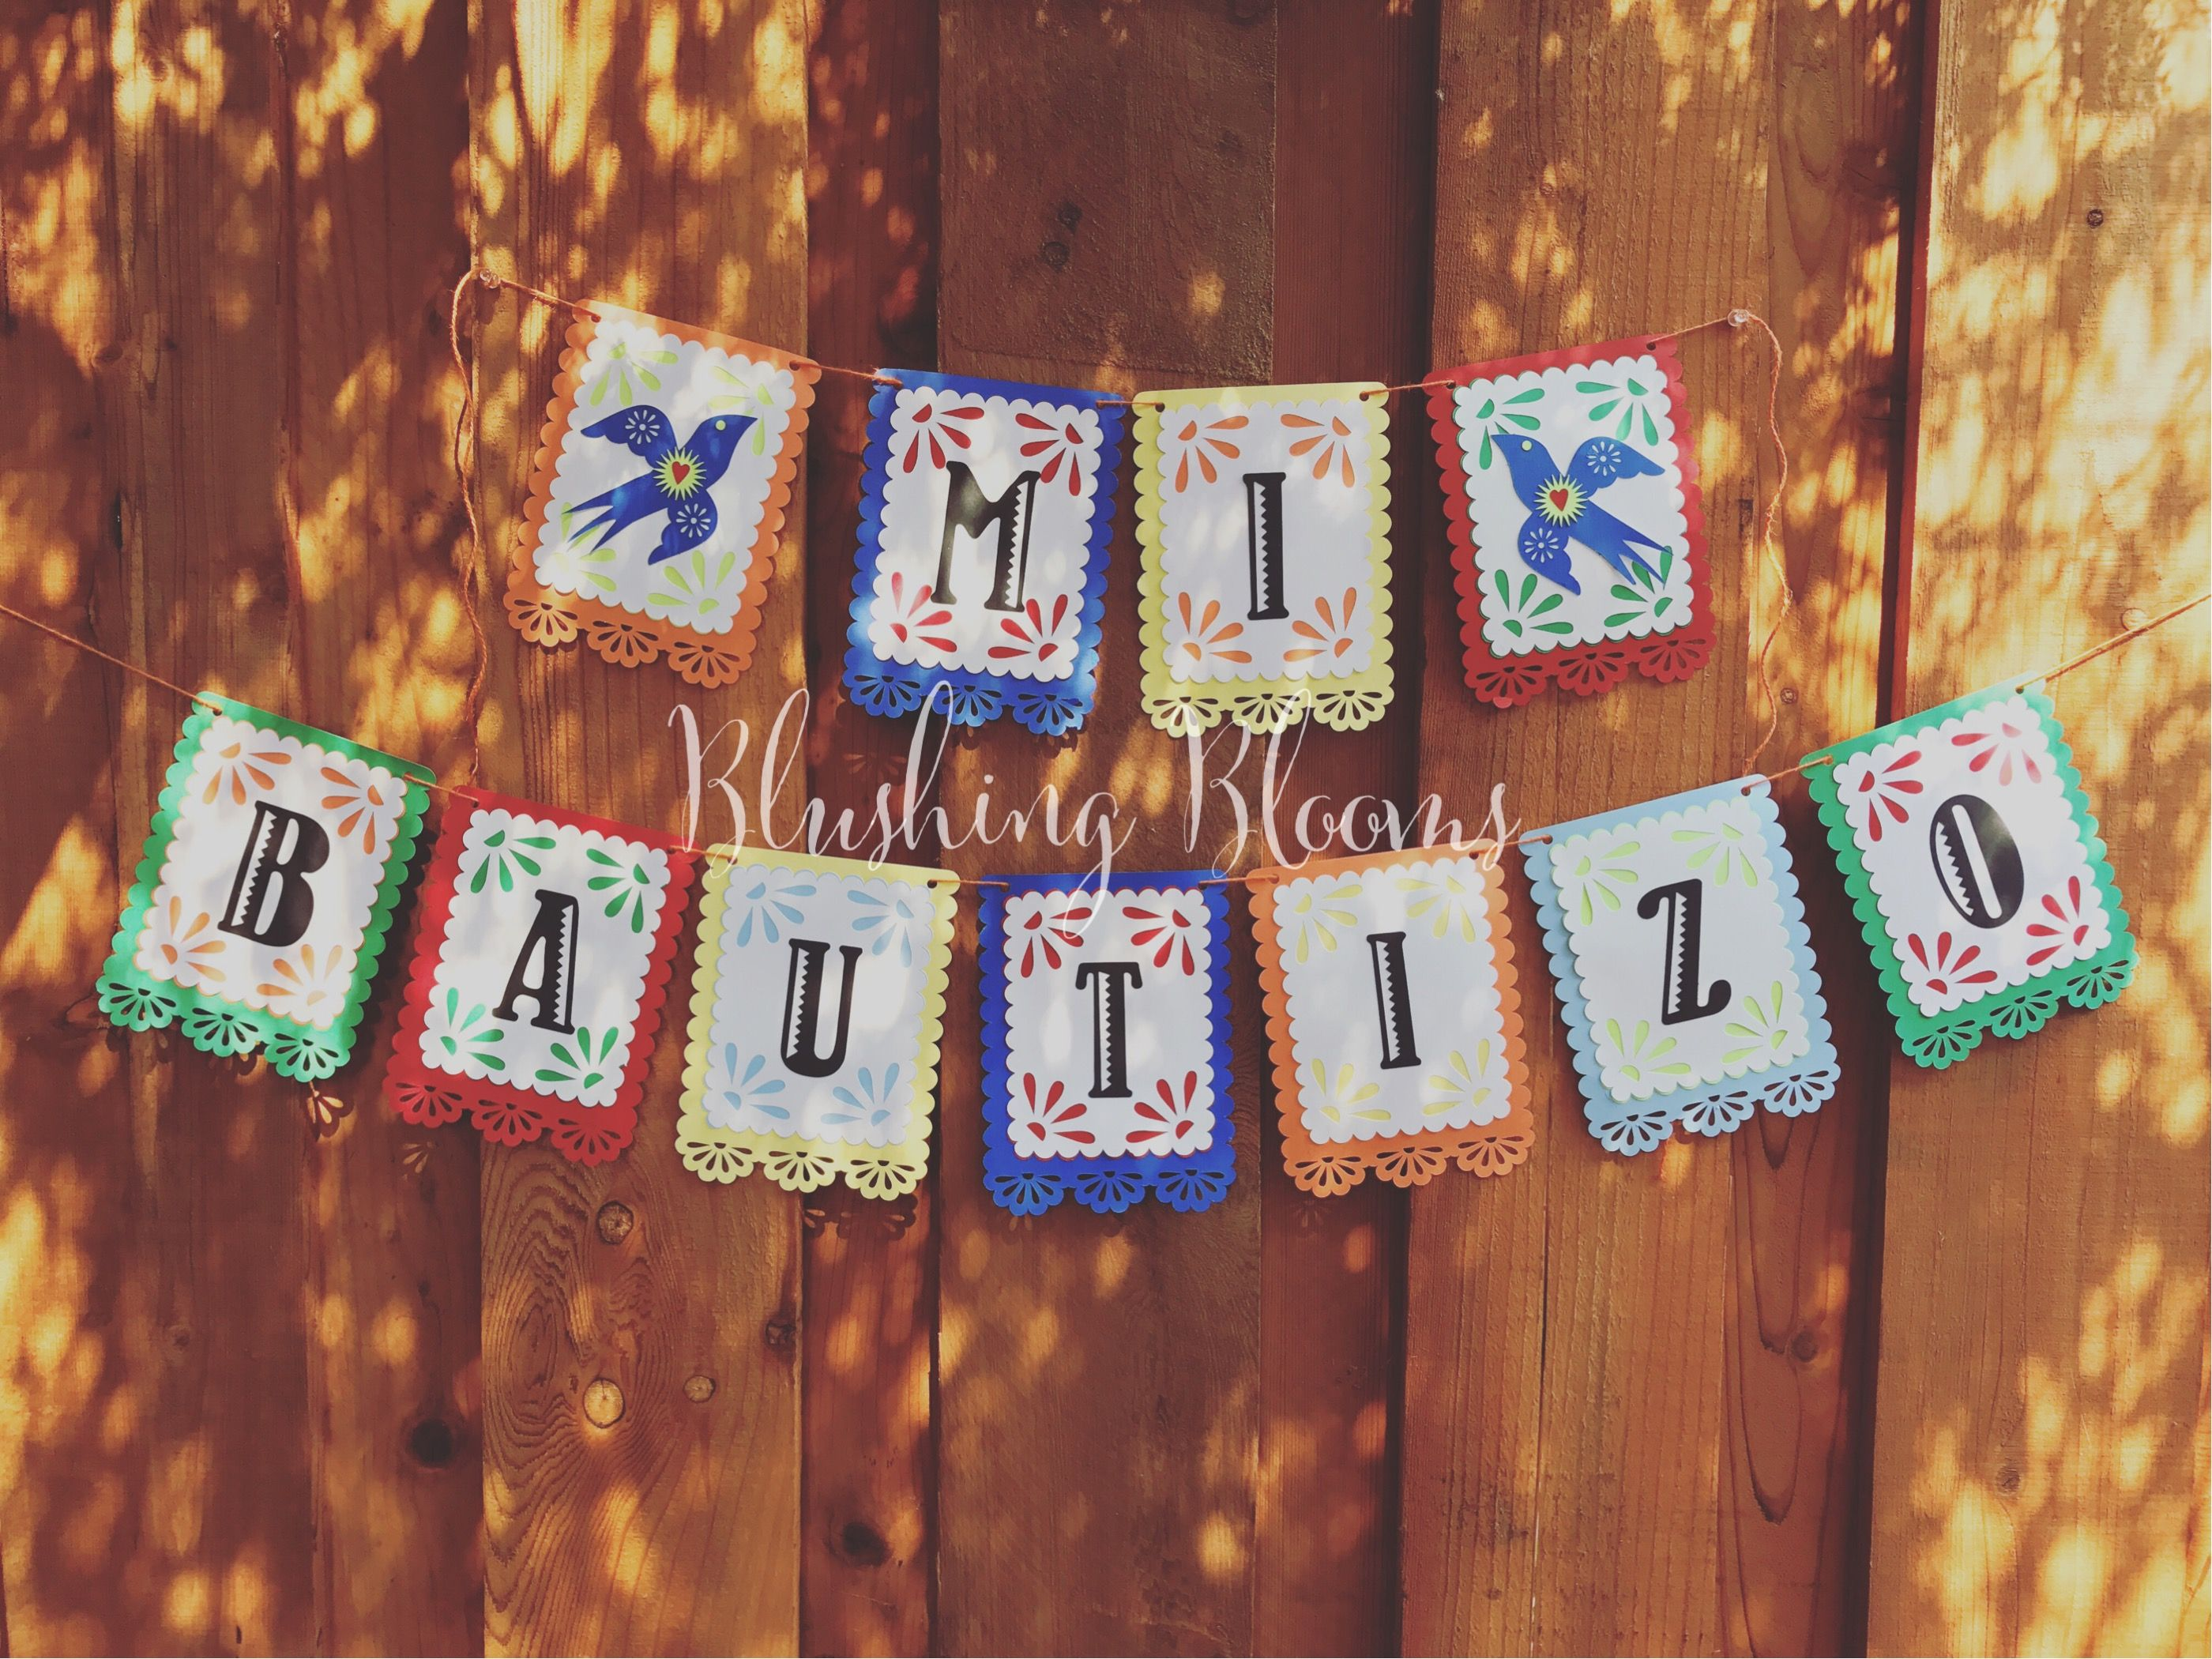 Mi Bautizo Fiesta Themed Banner From Blushing Blooms By Amber